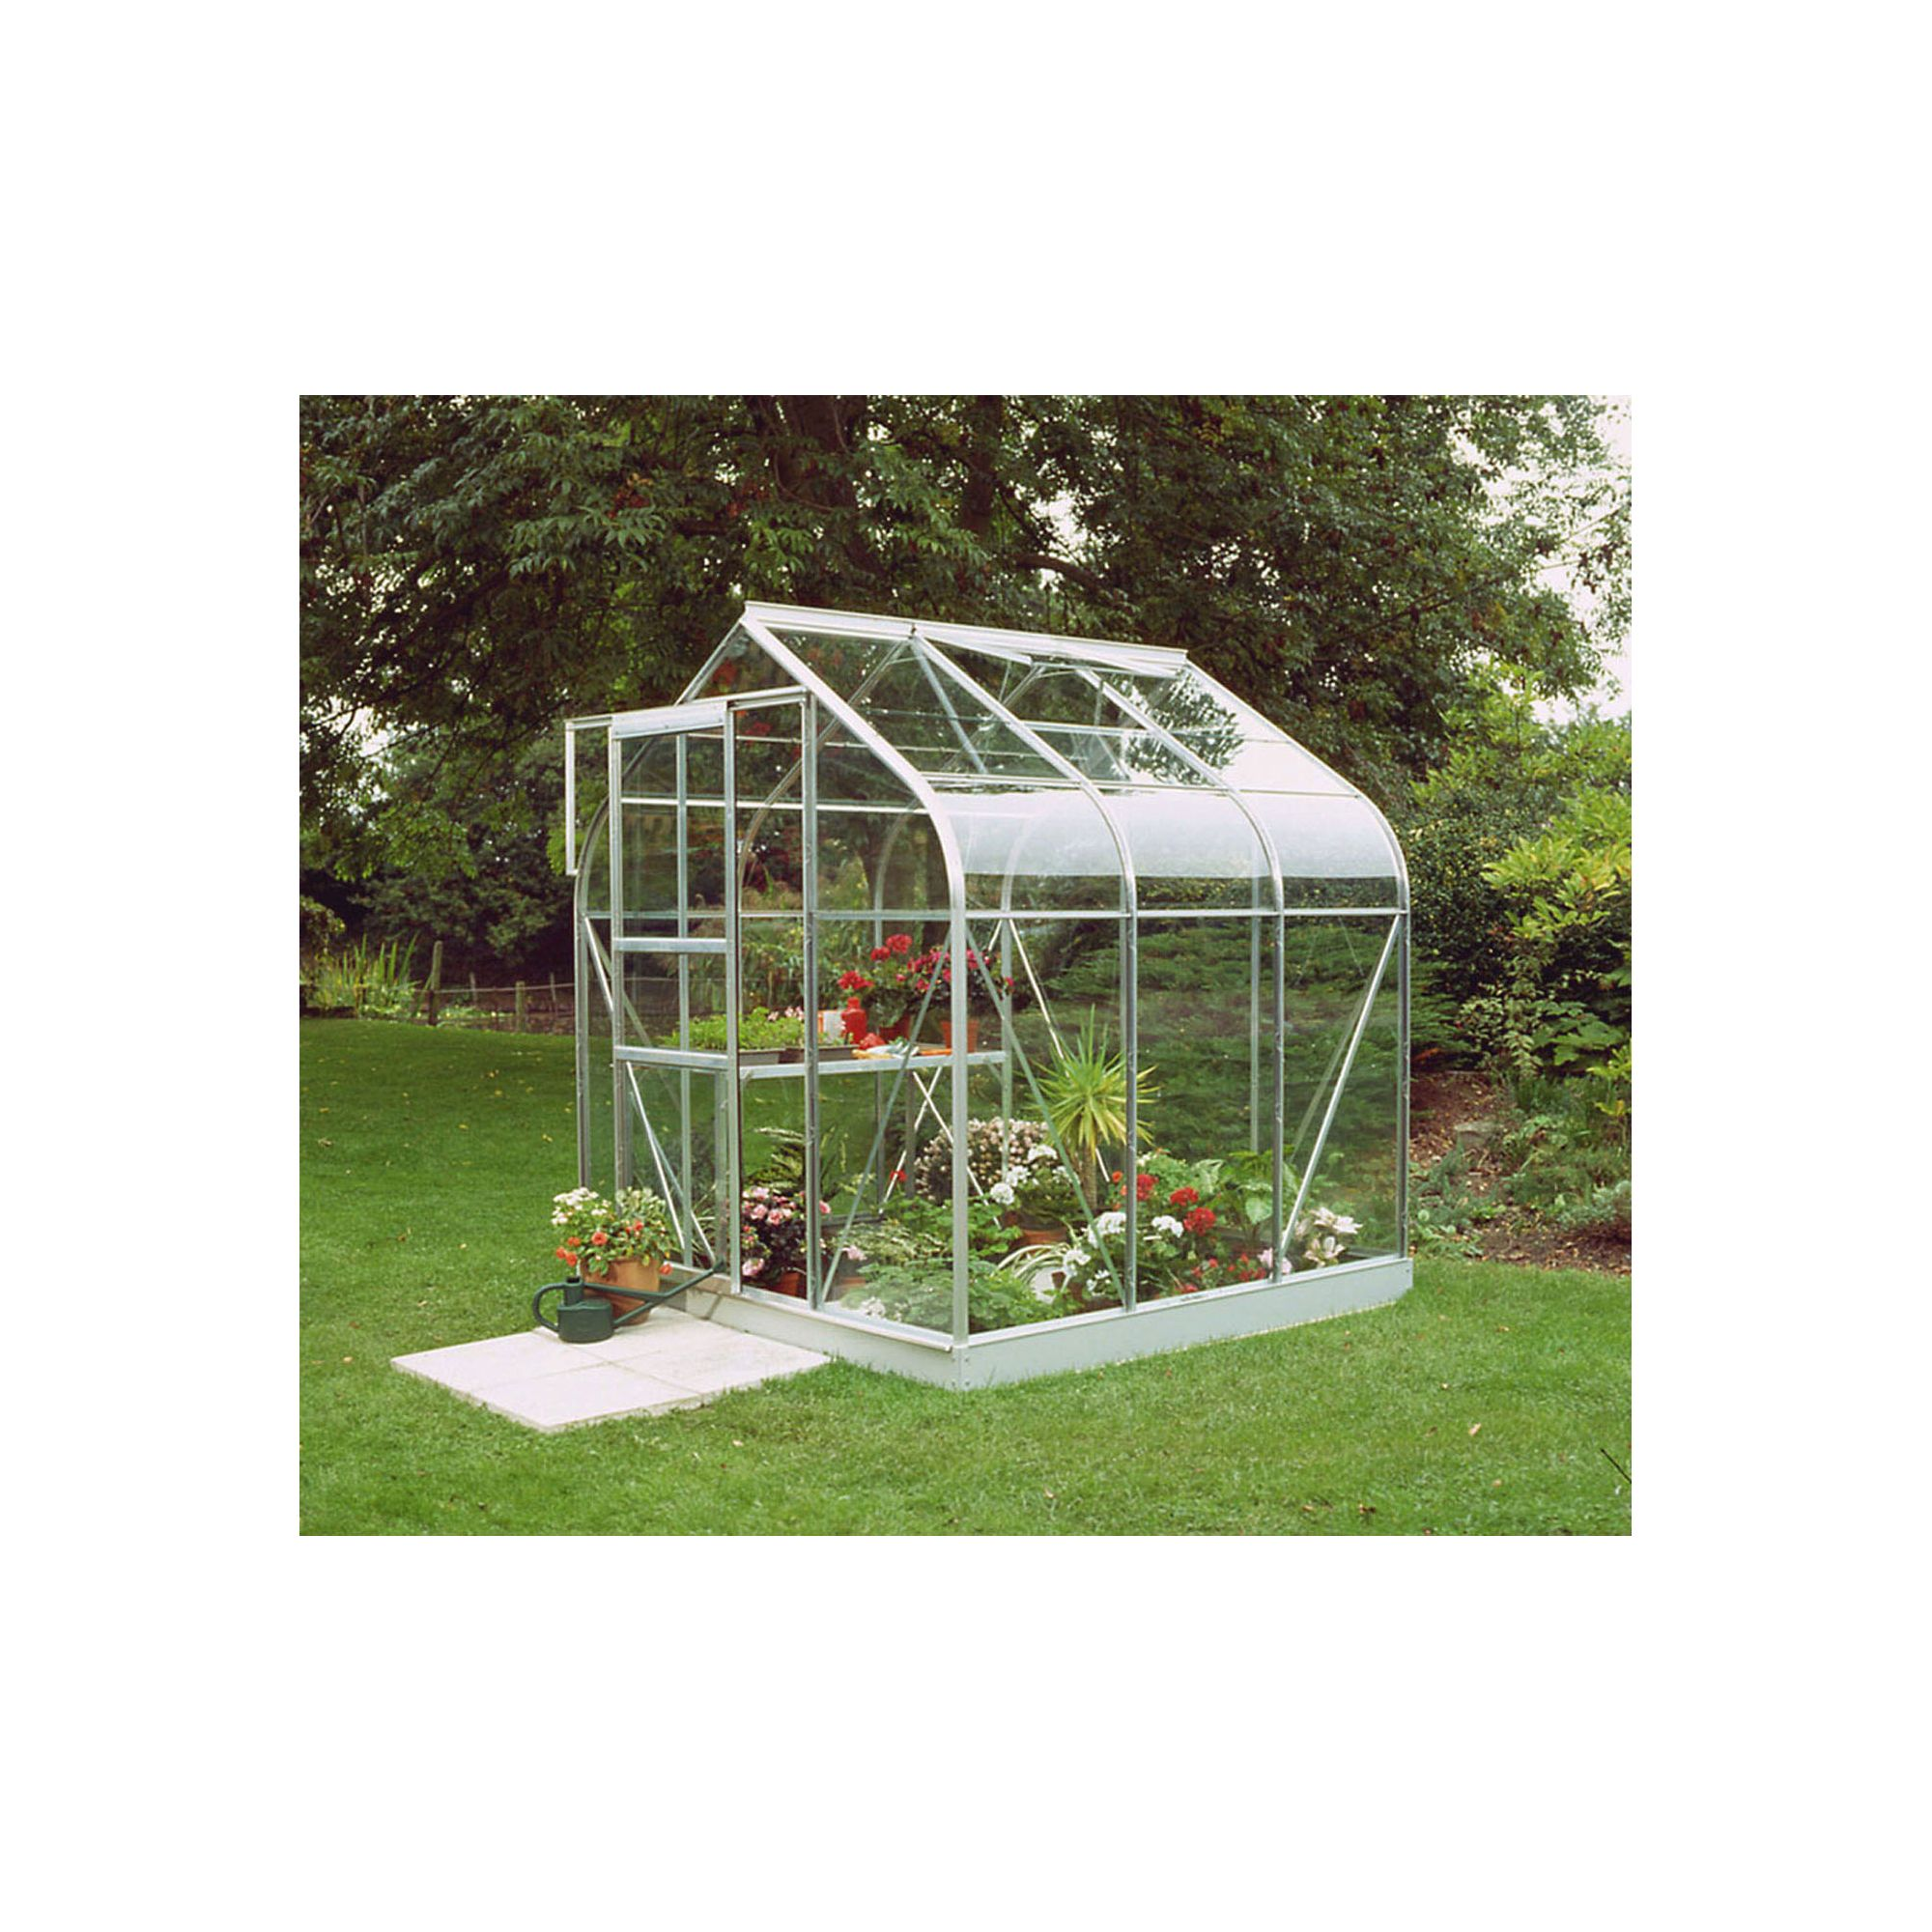 Halls 6x6 Curved Aluminium Greenhouse + Base - Toughened Glass at Tesco Direct